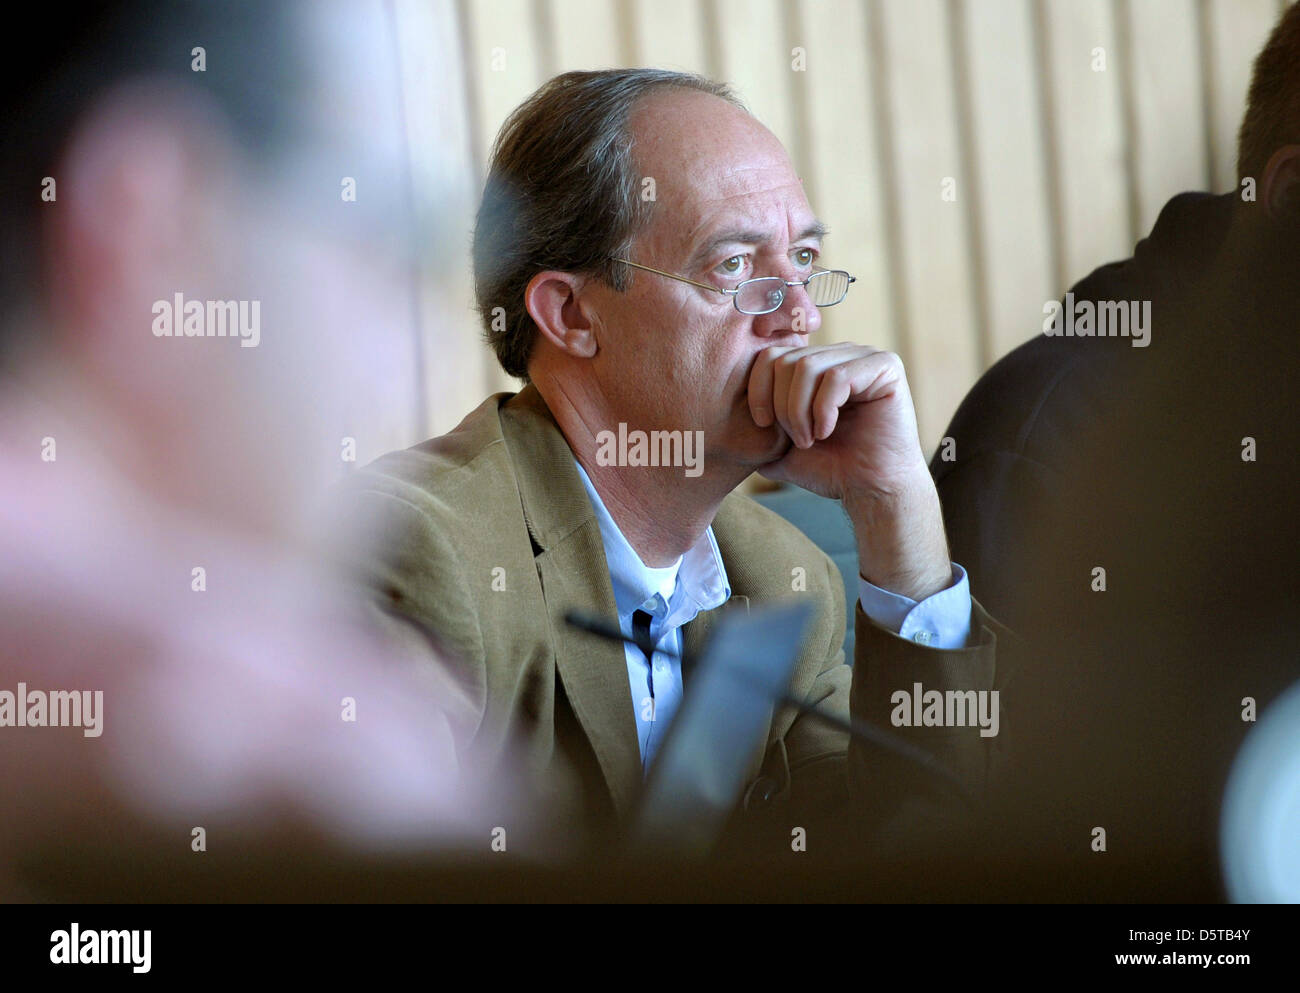 Dietmar Schulz, member of the German party The Pirates, attends the party's fraction meeting in Duesseldorf, - Stock Image